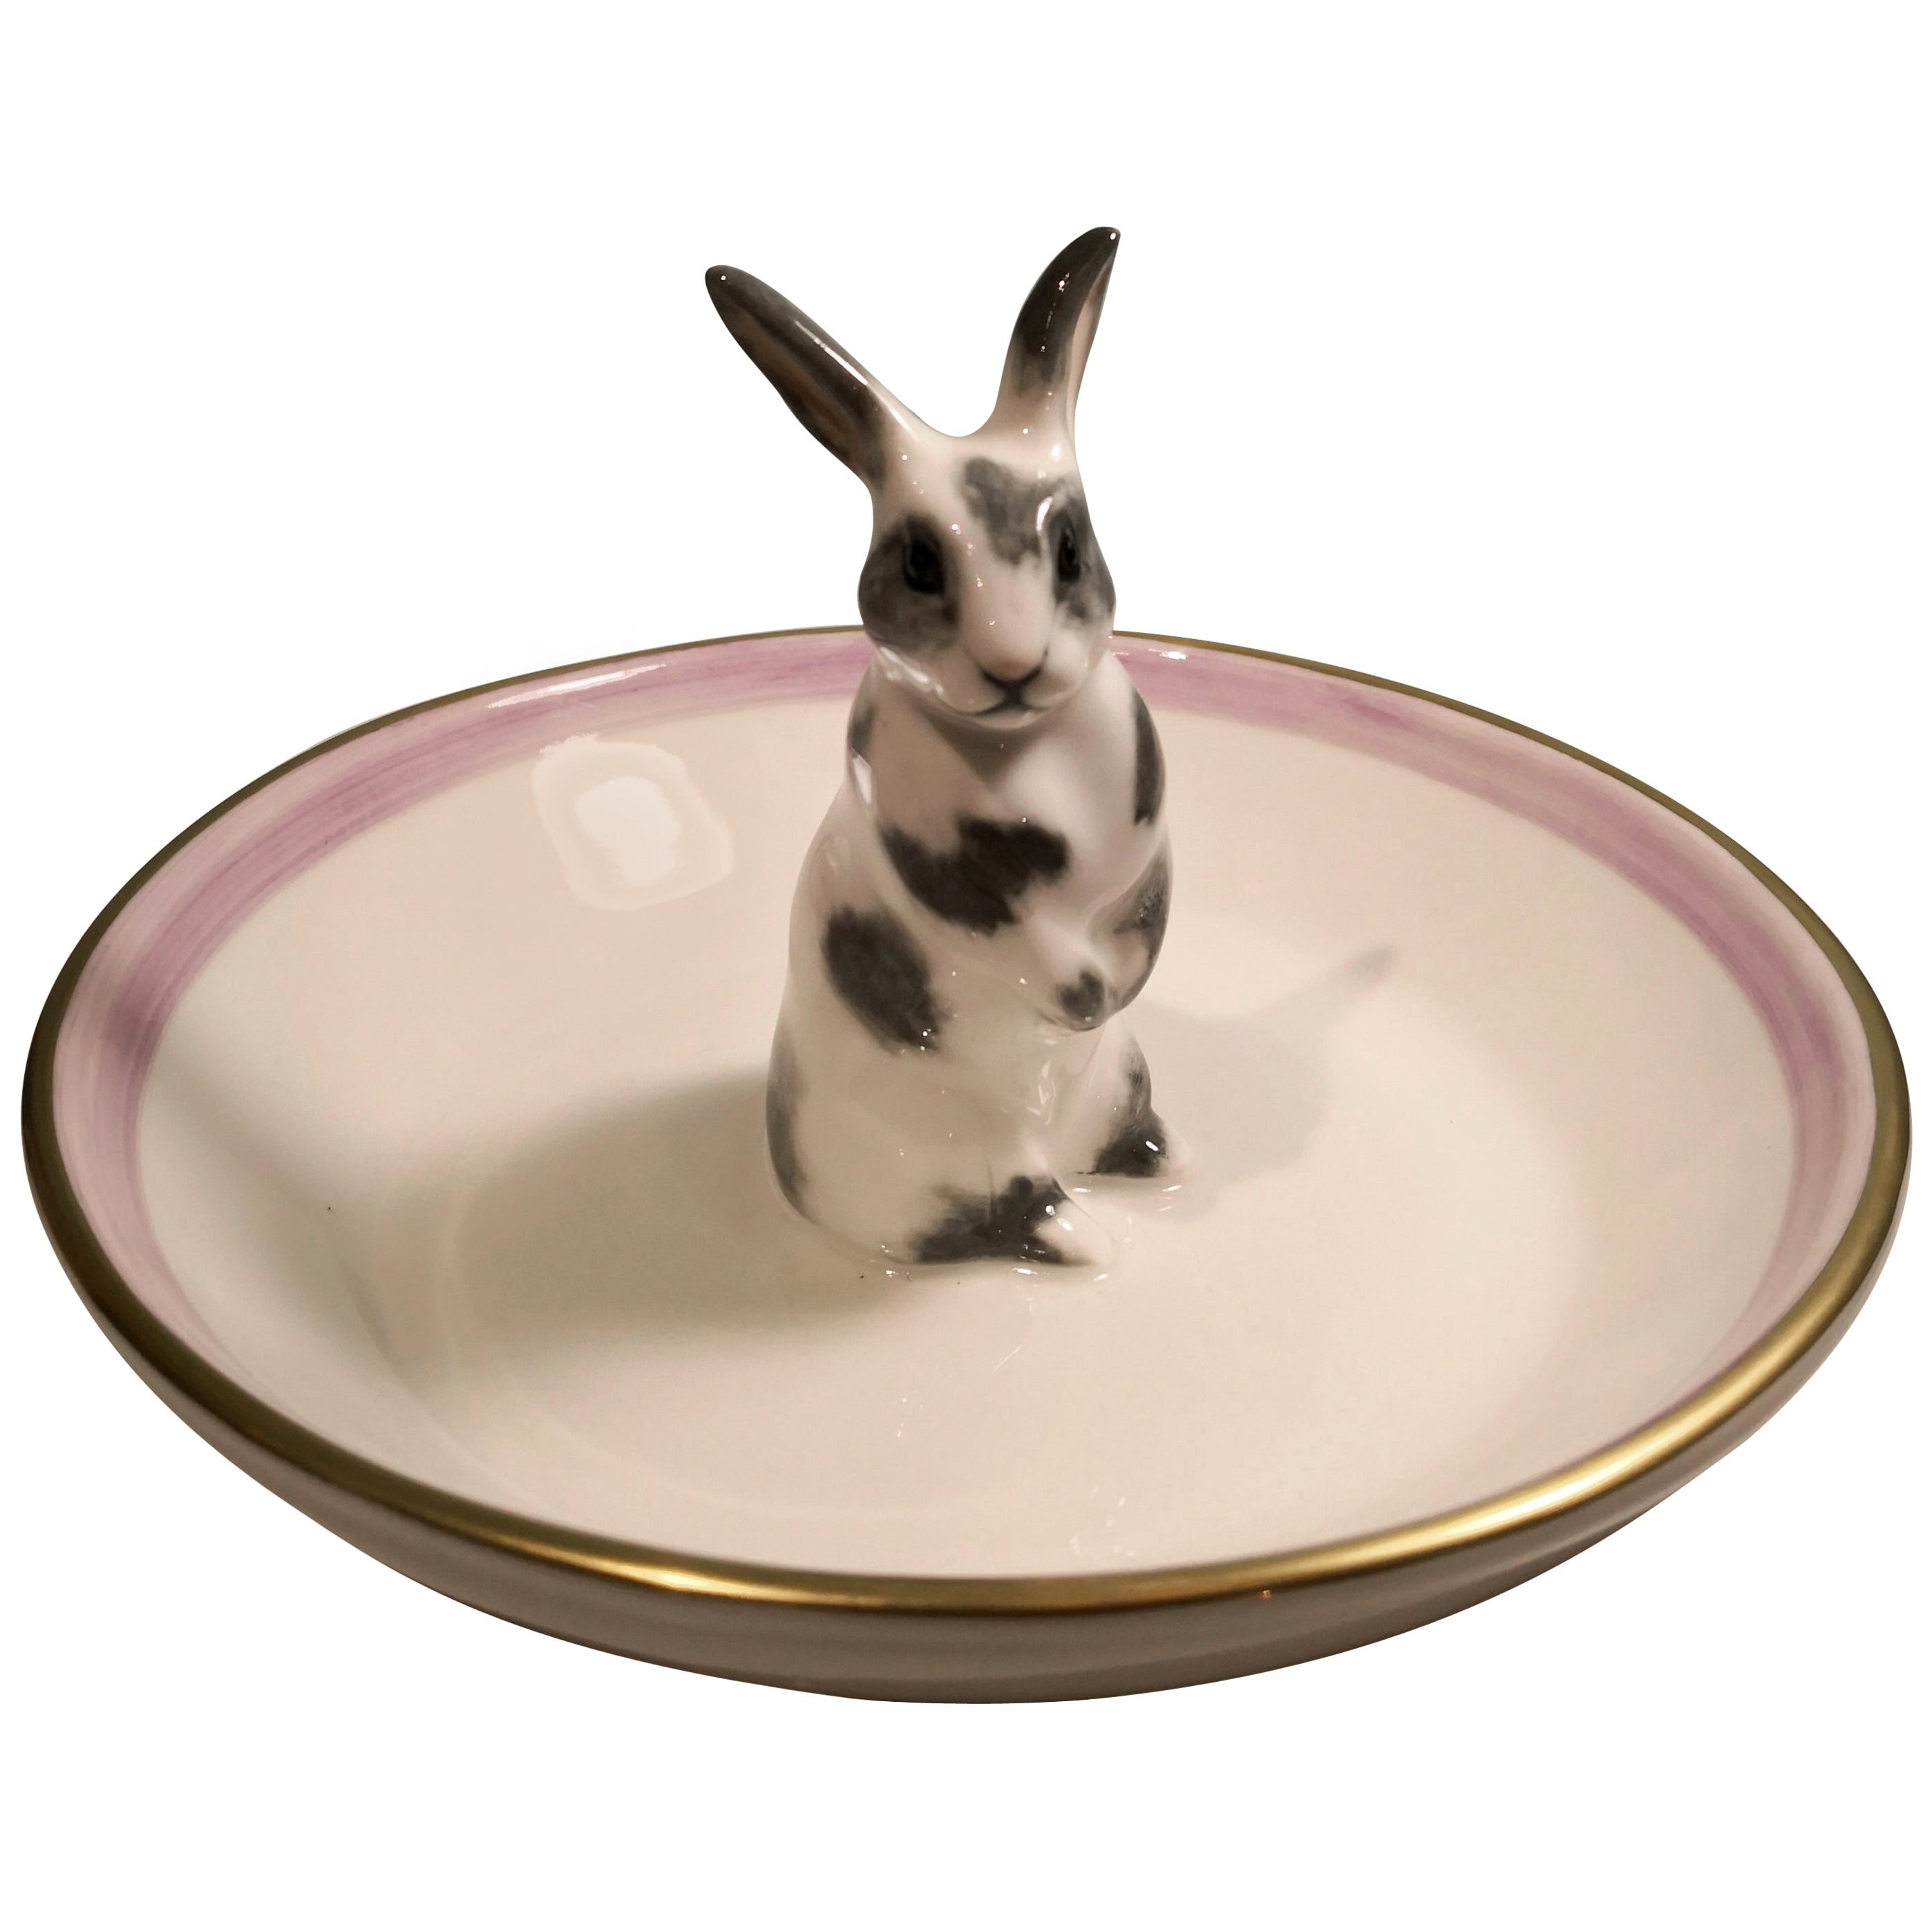 Country Style Porcelain Bowl with Bunny Figure Sofina Boutique Kitzbuehel